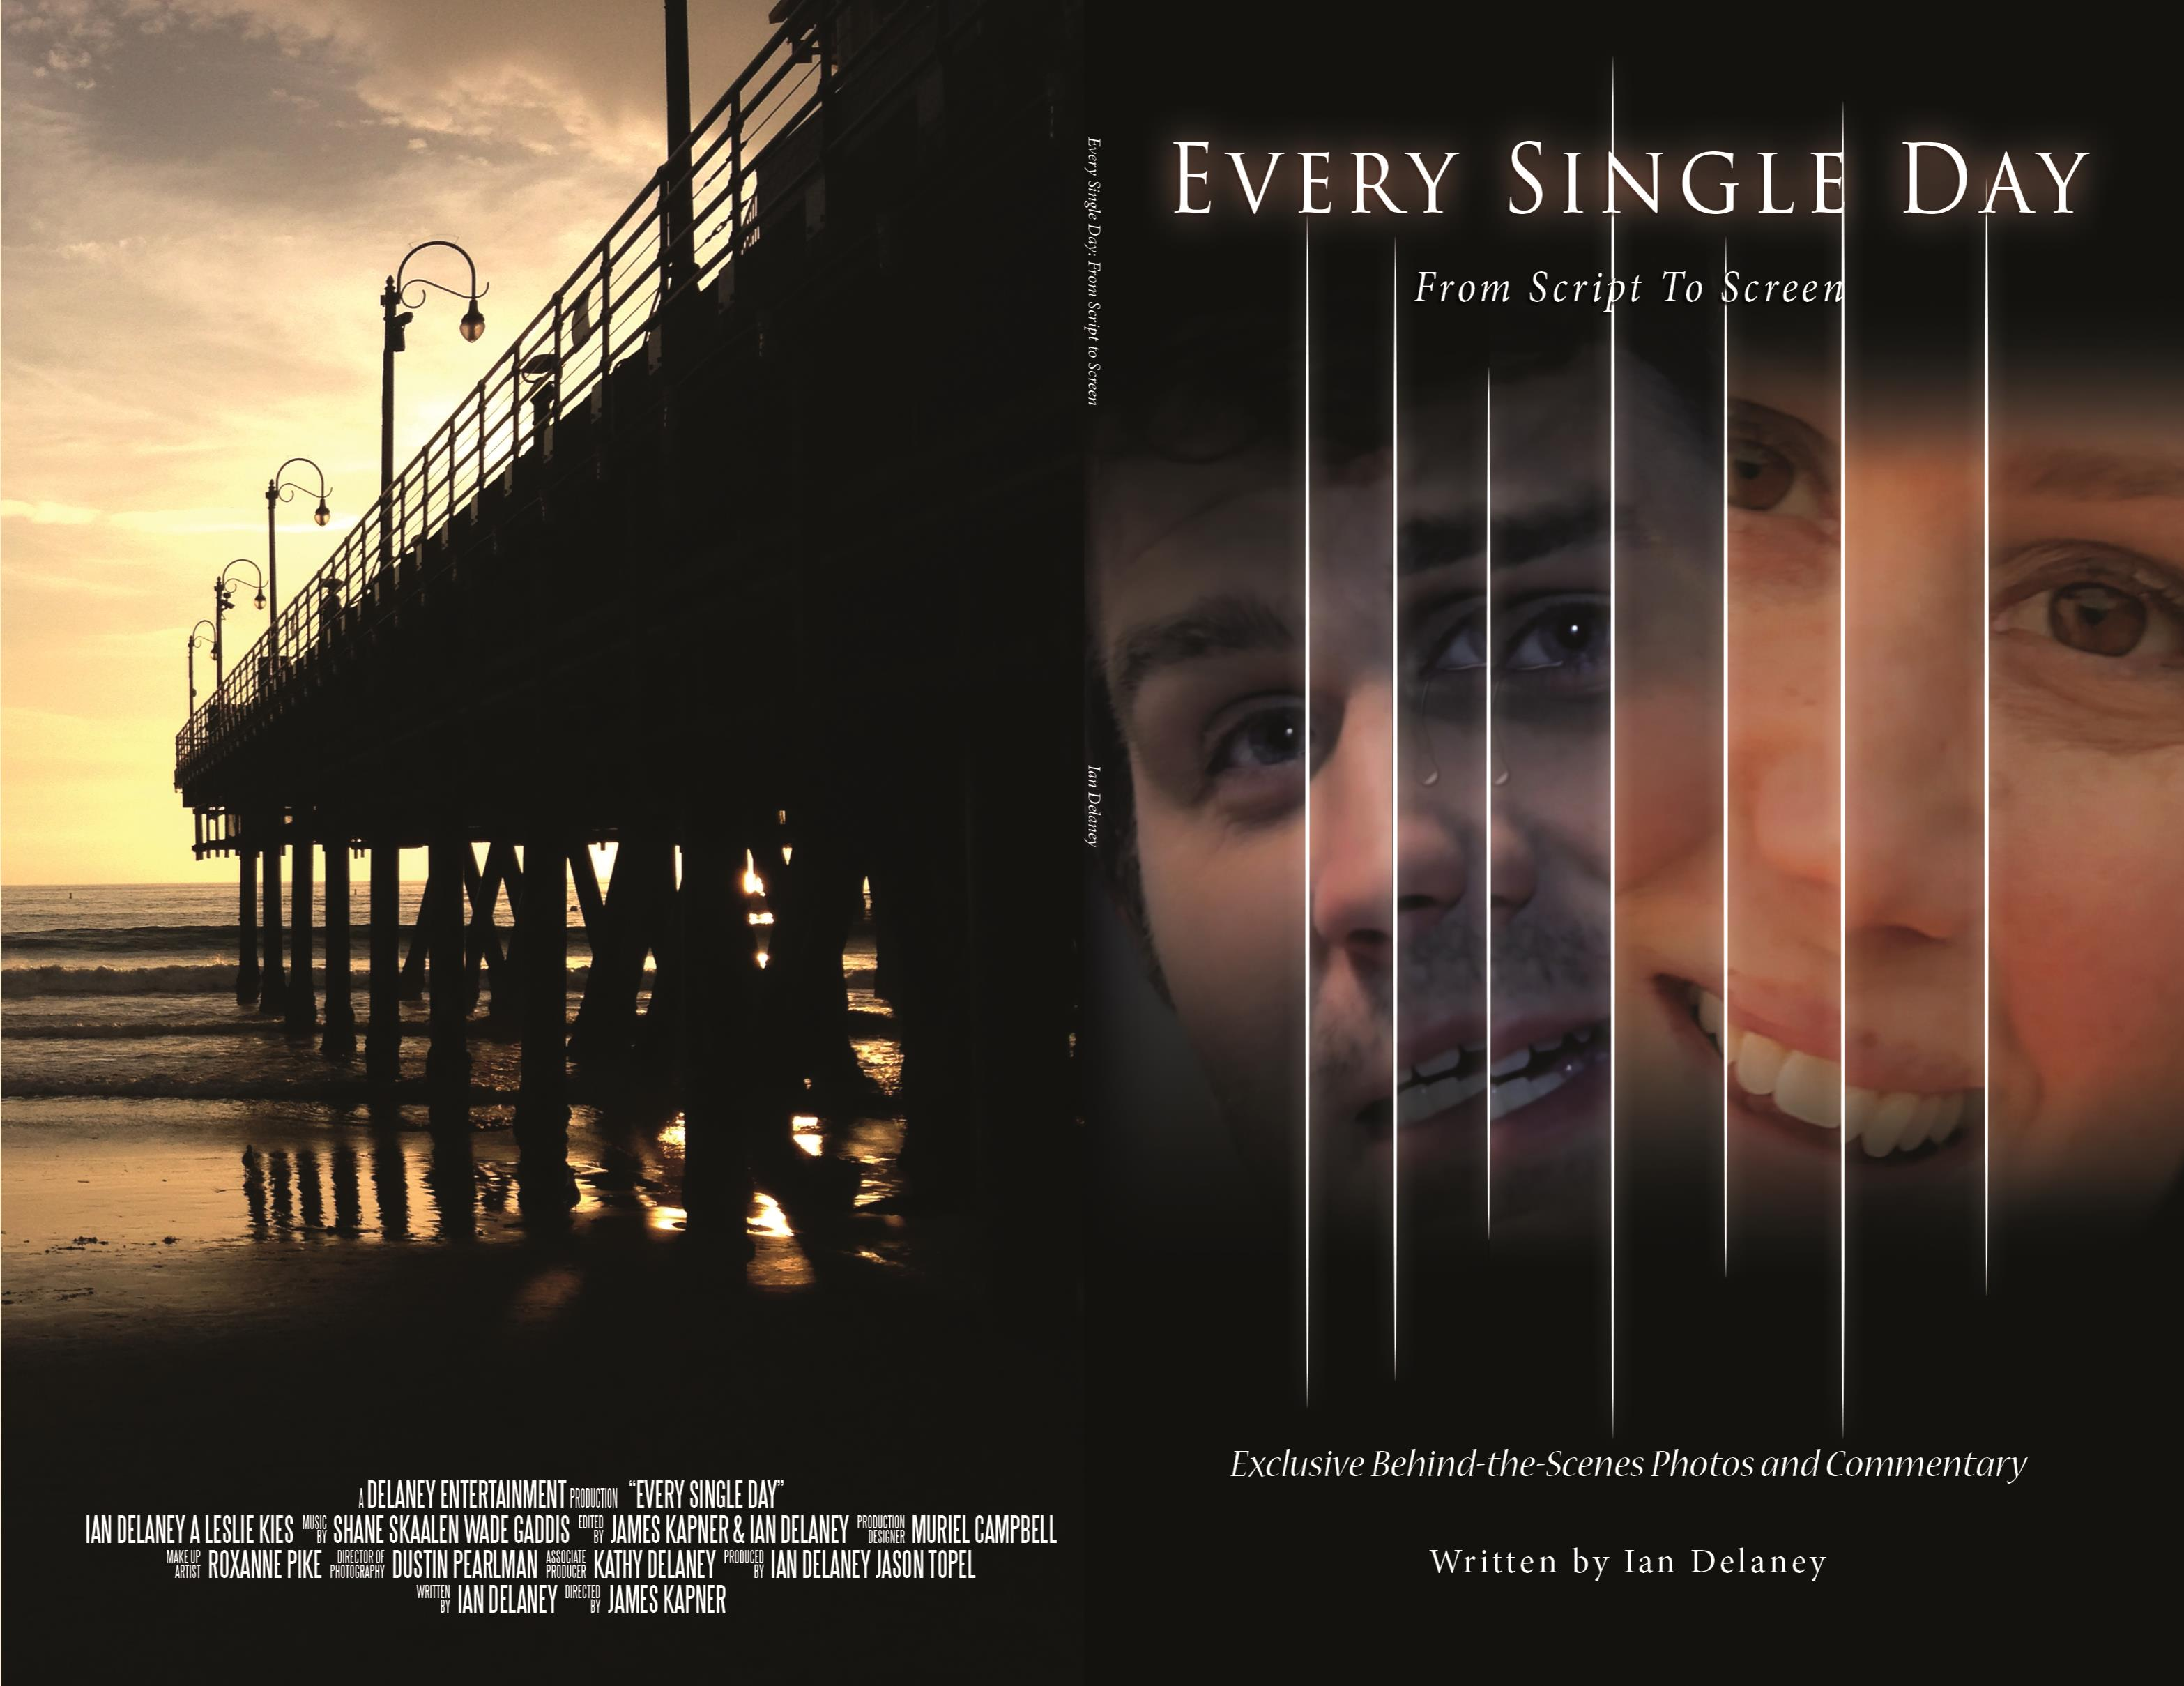 Every Single Day: from script to screen cover image